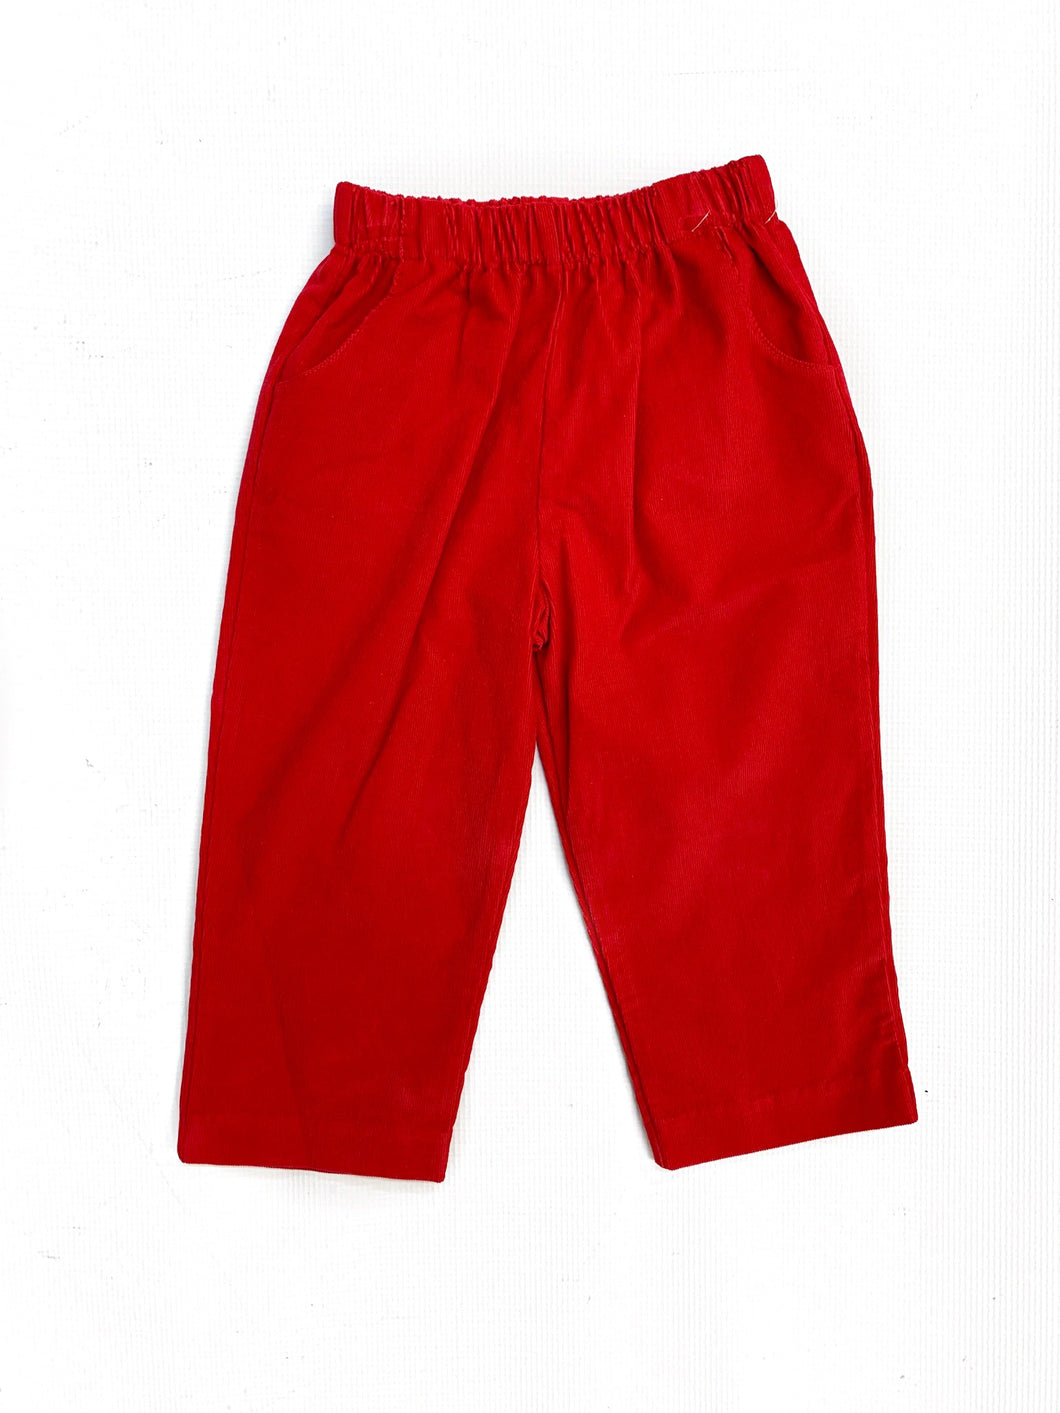 Banbury Cross Red Corduroy Pant